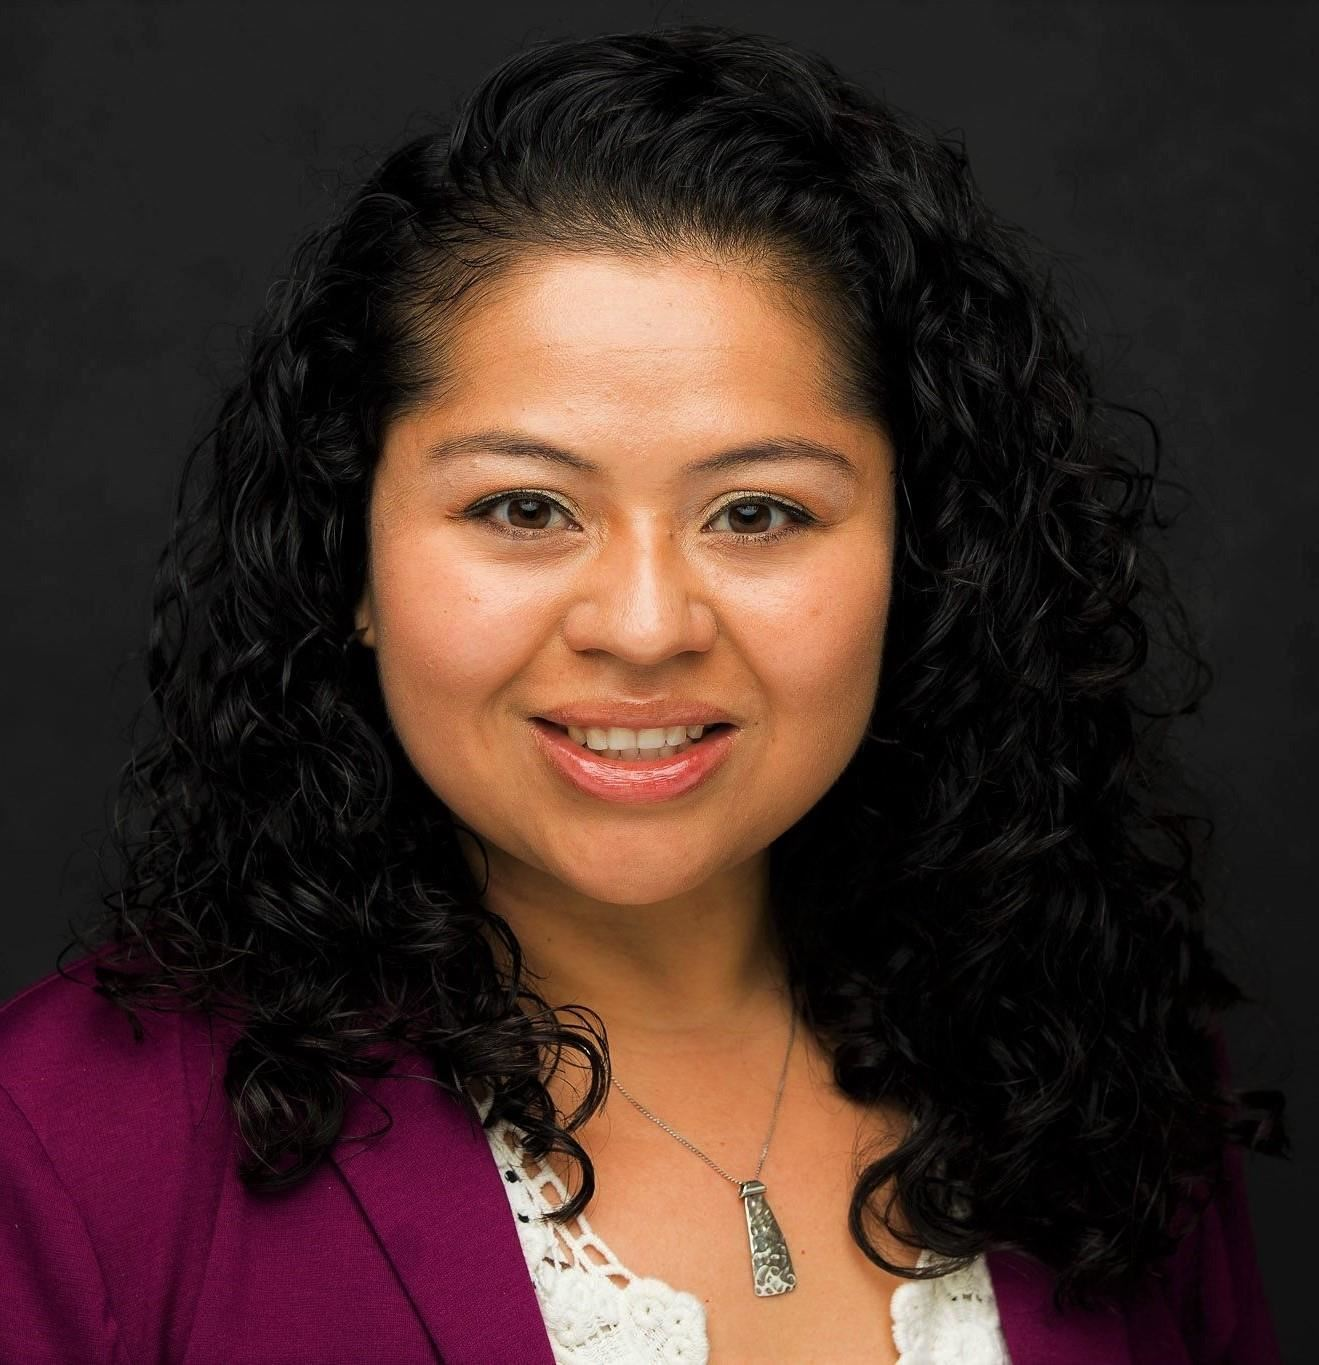 Margina Escobar, Chief Financial Officer